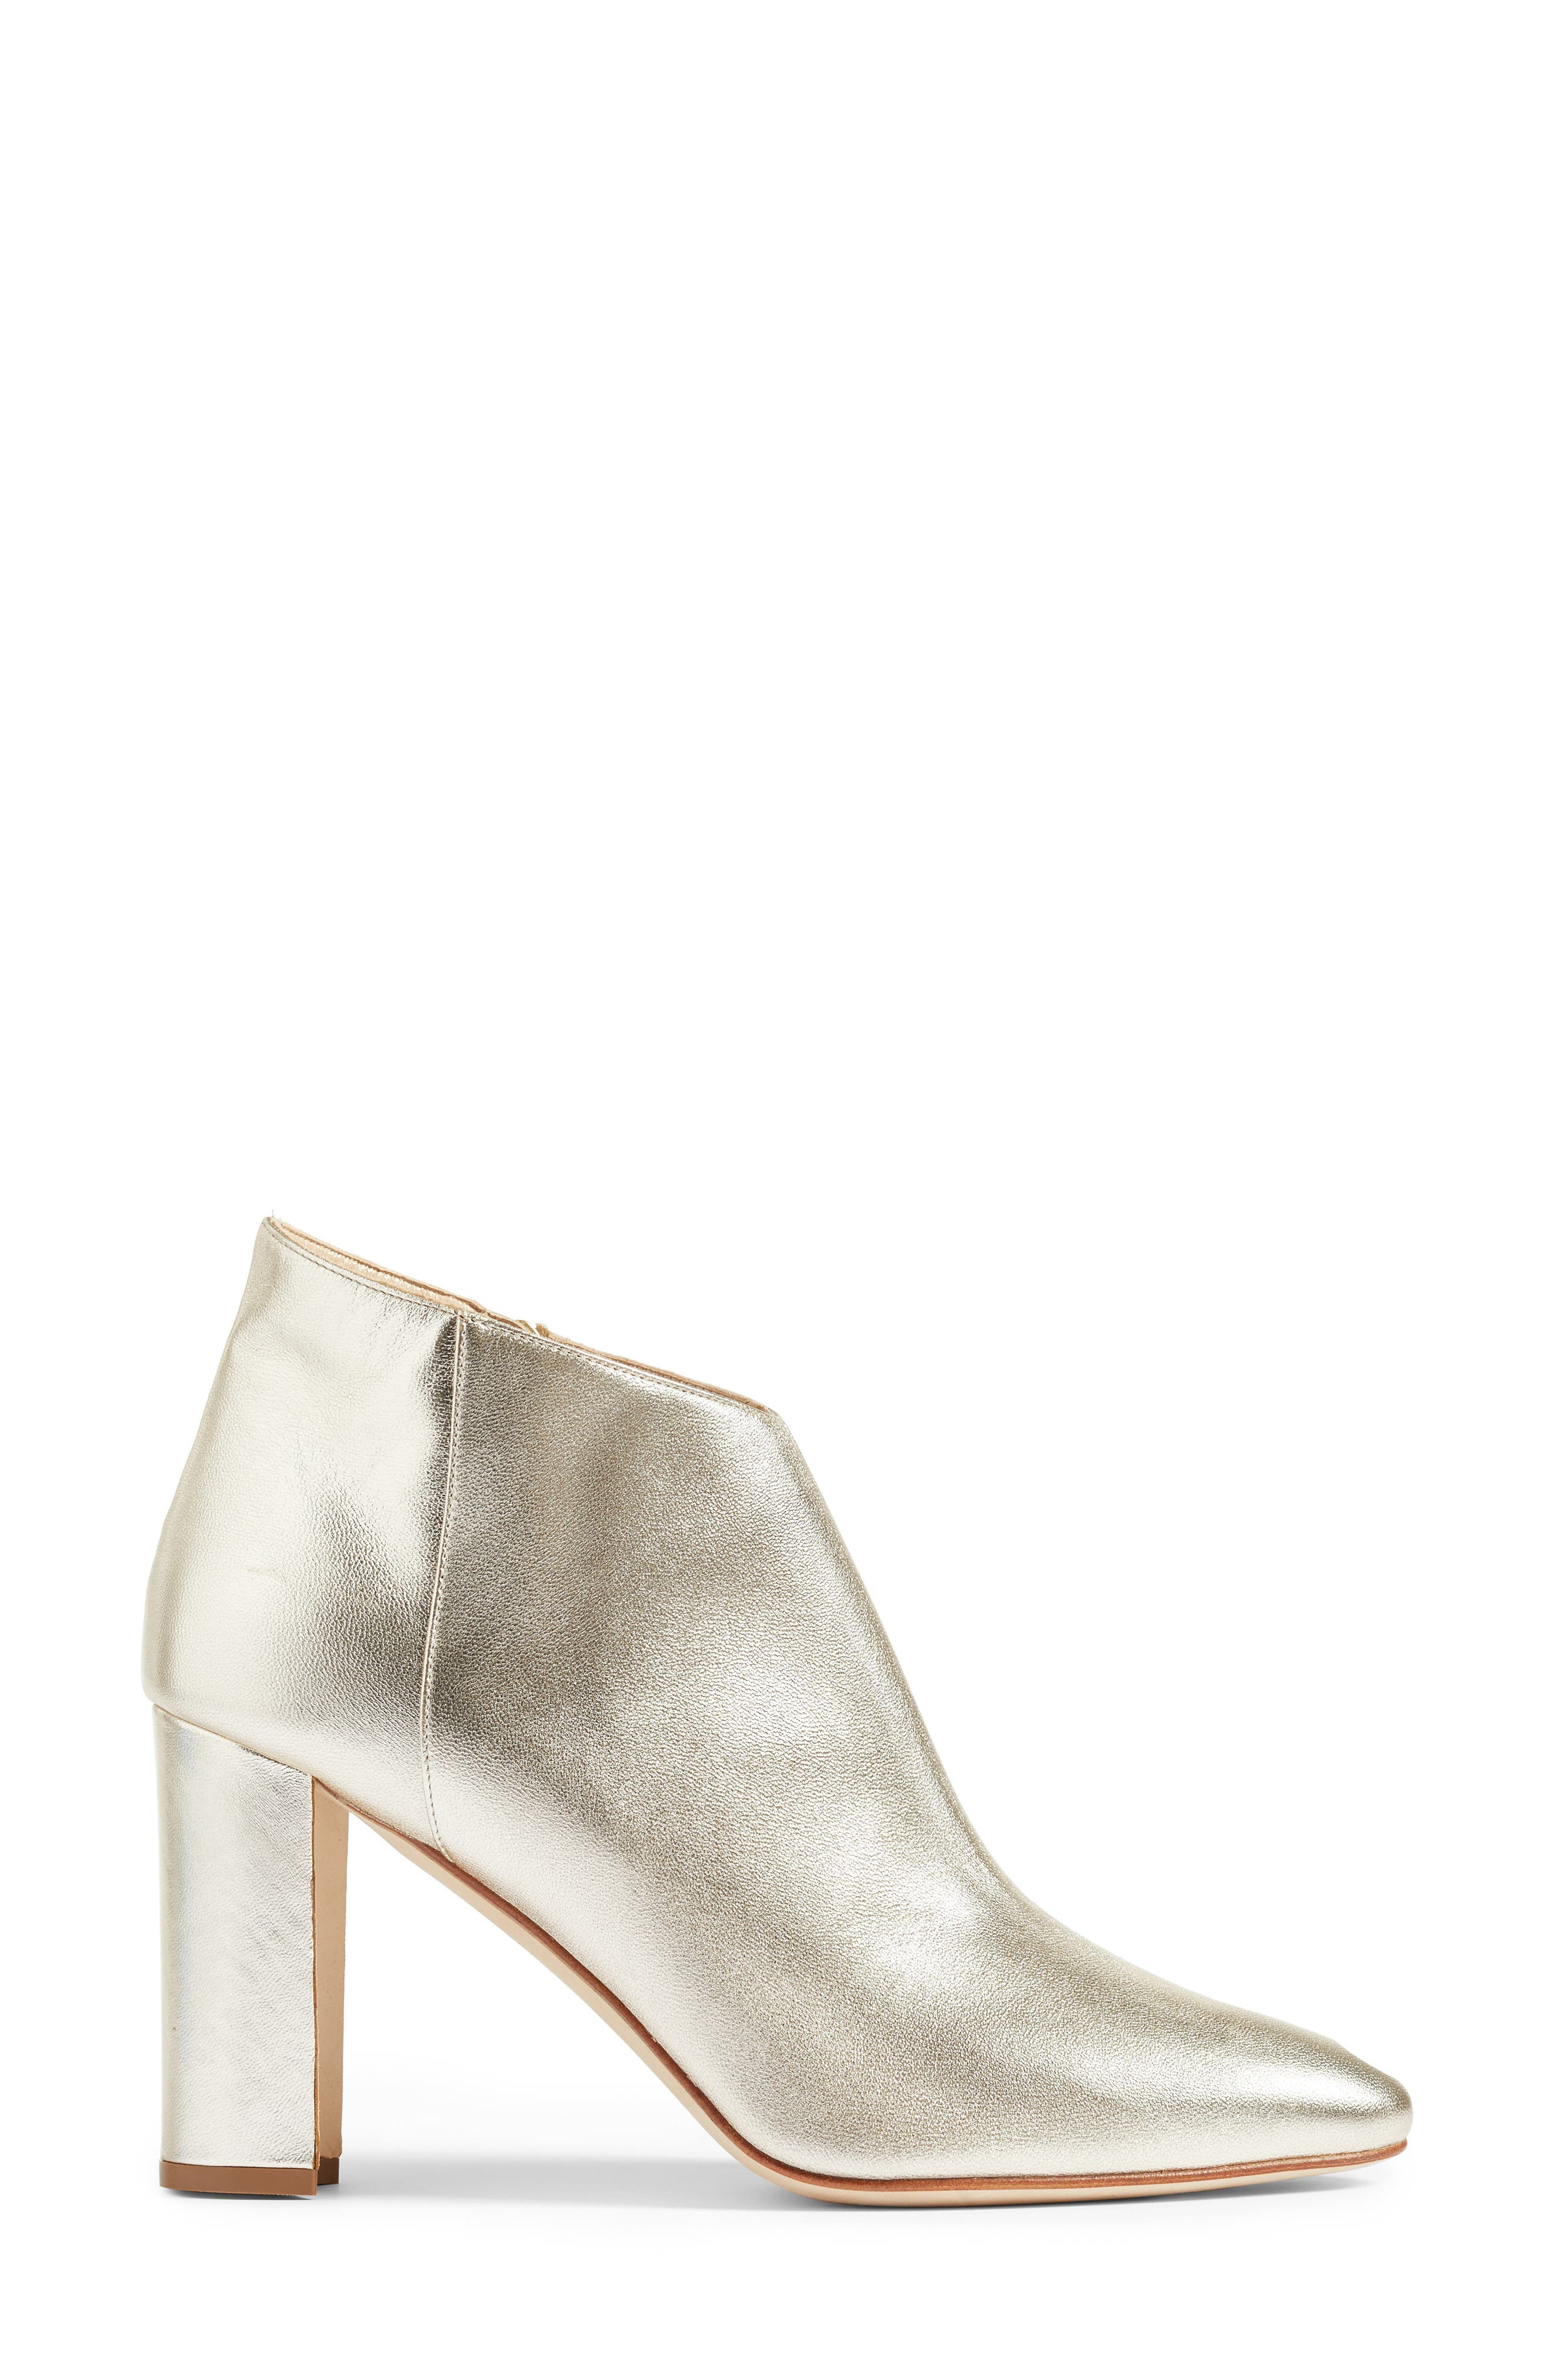 'Brusta'  Bootie,                             Alternate thumbnail 3, color,                             Light Gold Leather